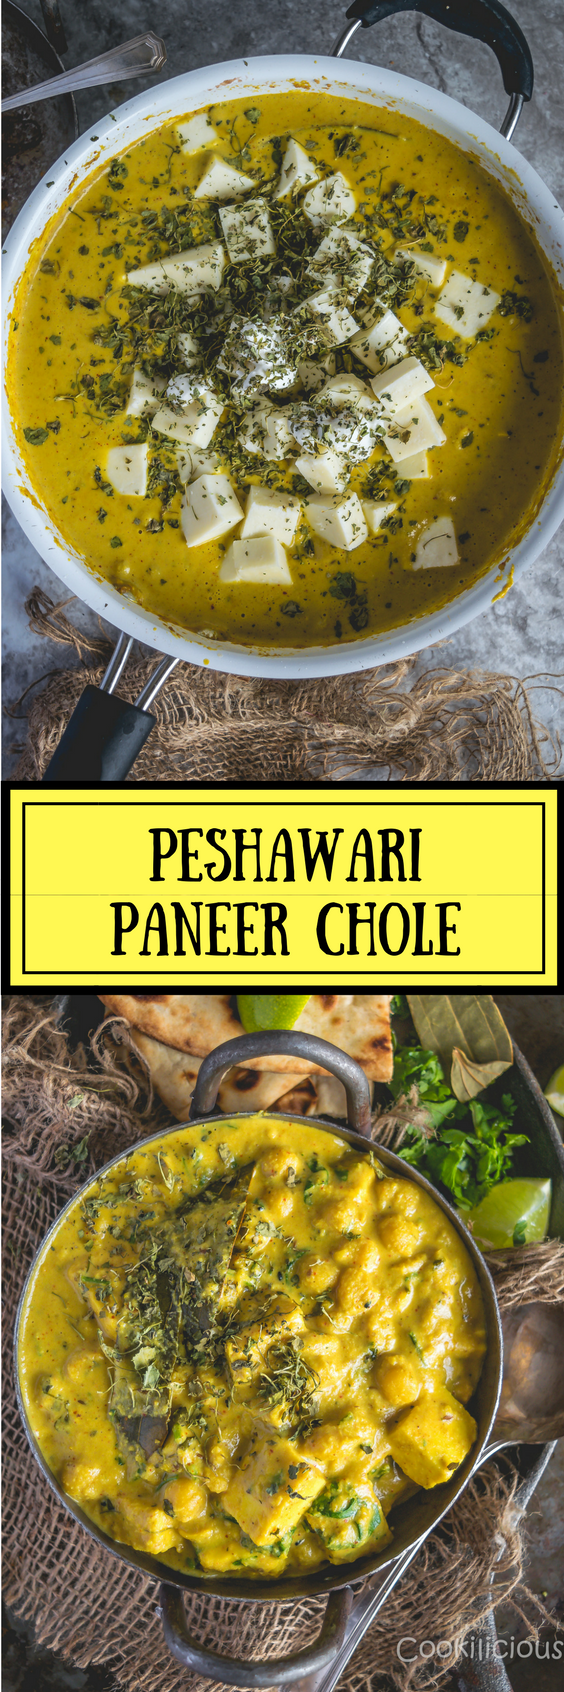 Peshawari Paneer Chole is a delicious recipe made with chickpeas and paneer that blend very well together while still retaining the authentic Peshawari flavors. Peshawar recipes are full of flavor and are known for the mindful use of spices. A protein packed vegetarian gravy for the entire family.     via @cookiliciousveg